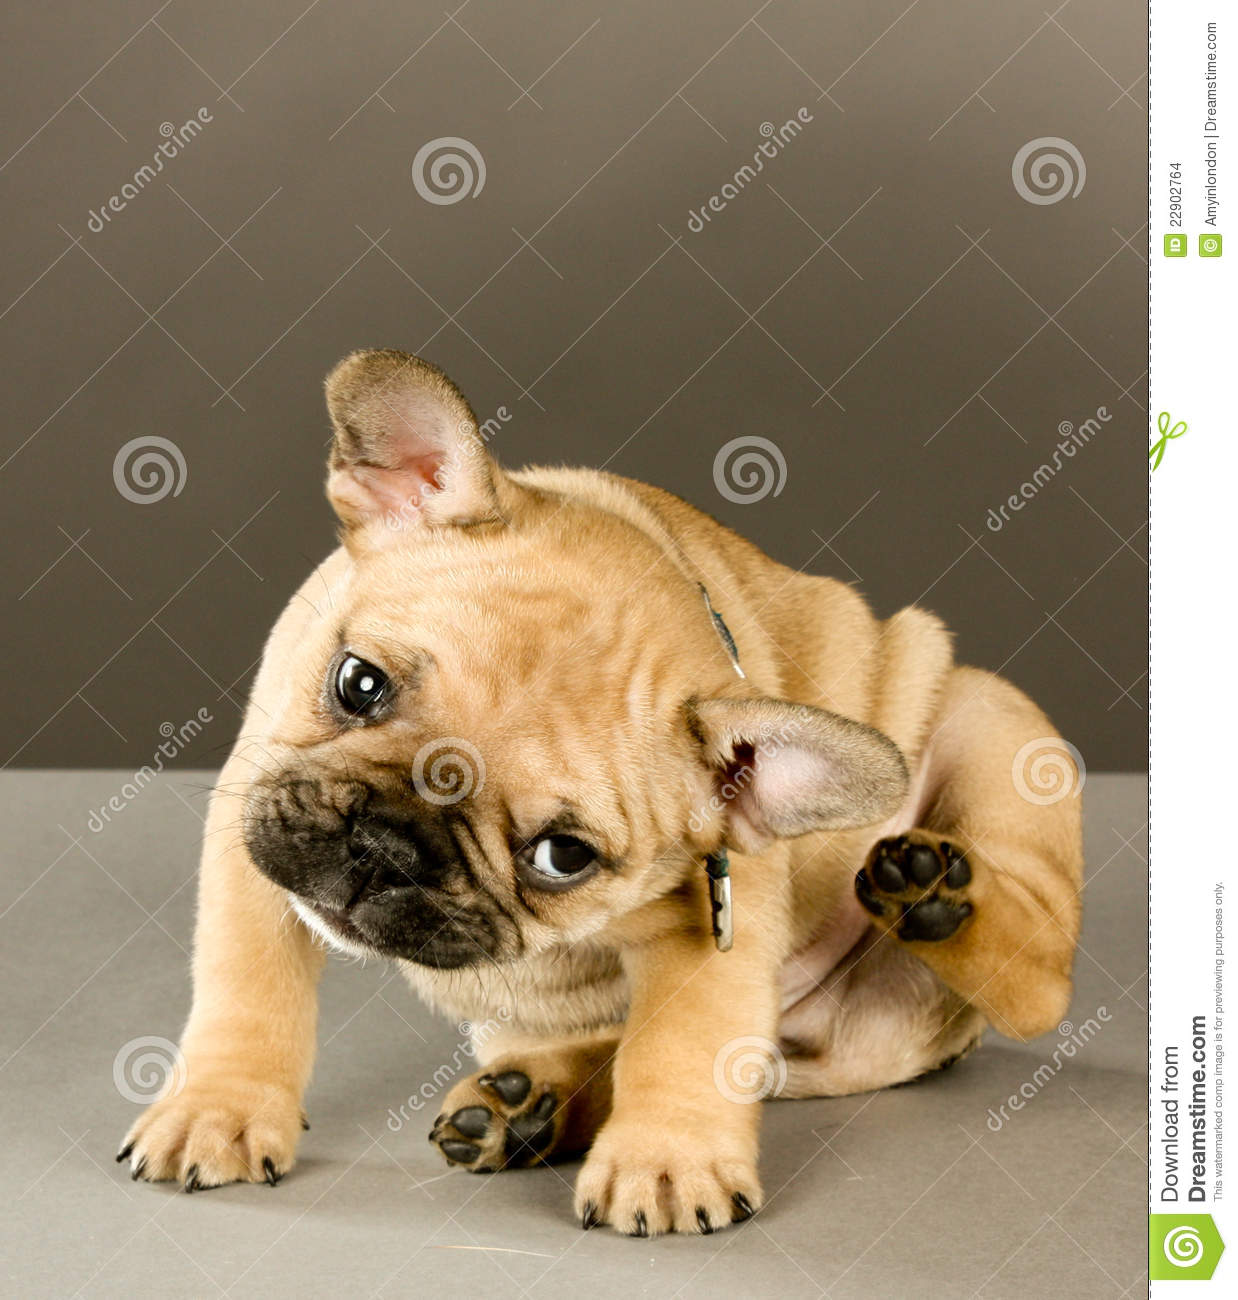 3 Ways to Care for an 8 Week Old Puppy - wikiHow